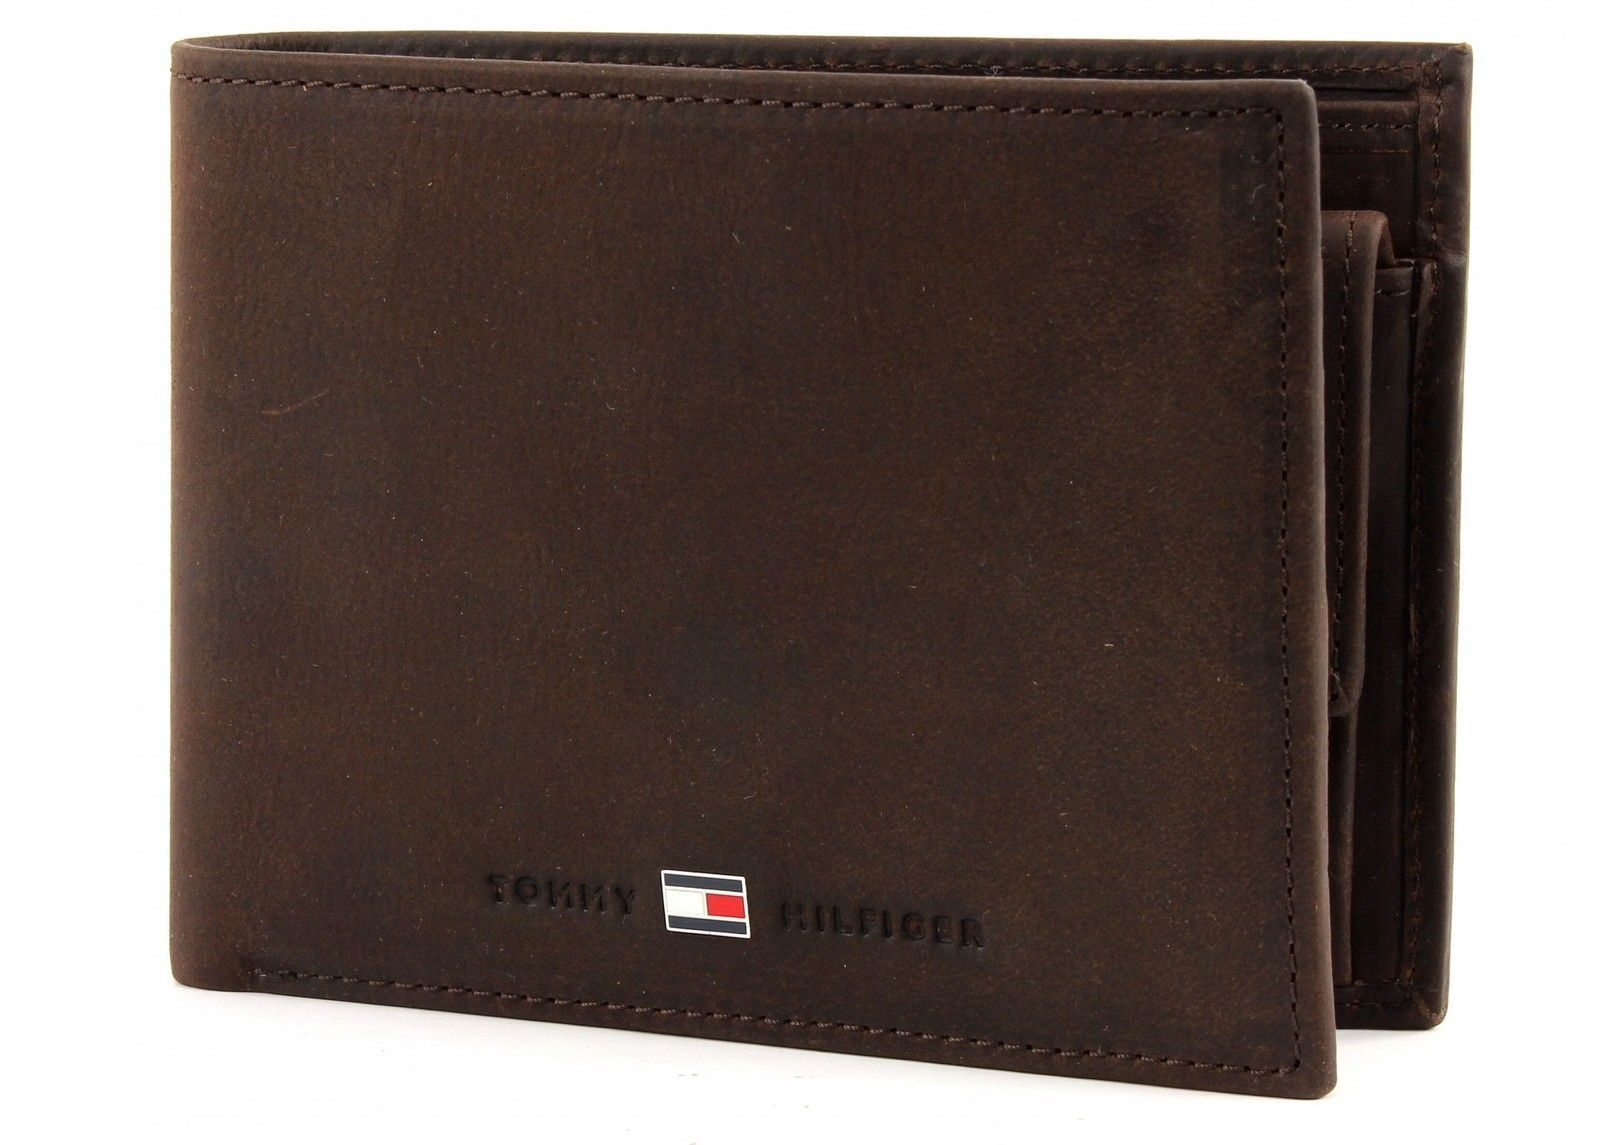 tommy hilfiger wallet credit card wallet card holder wallet